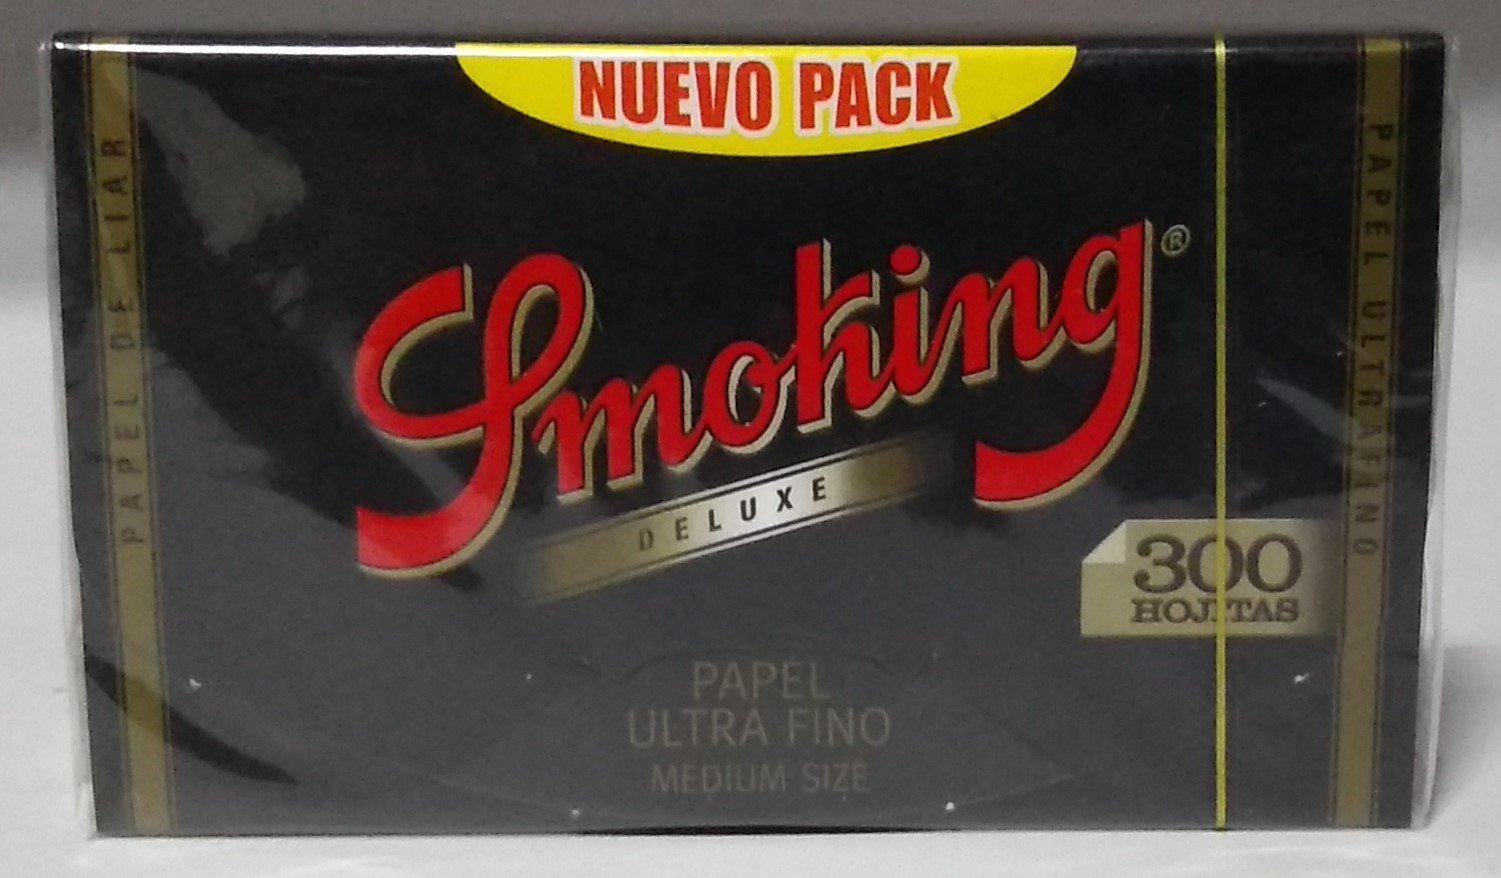 Papel Smoking Deluxe bloc 1.1/4